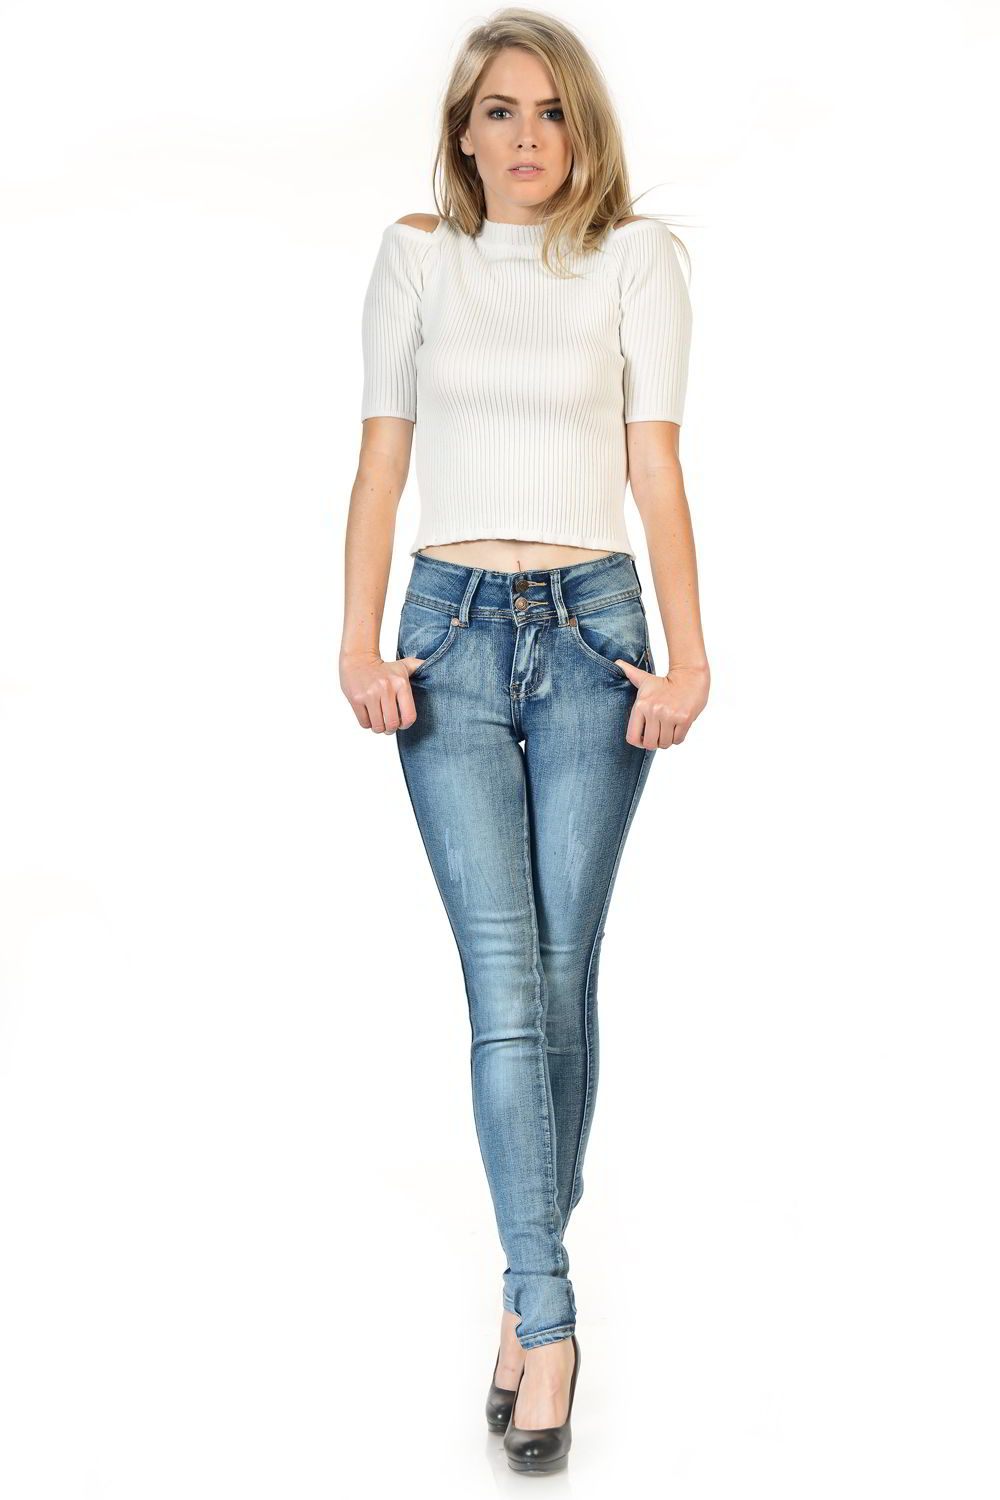 Sweet Look Premium Edition Women's Jeans - Push Up - Style X07